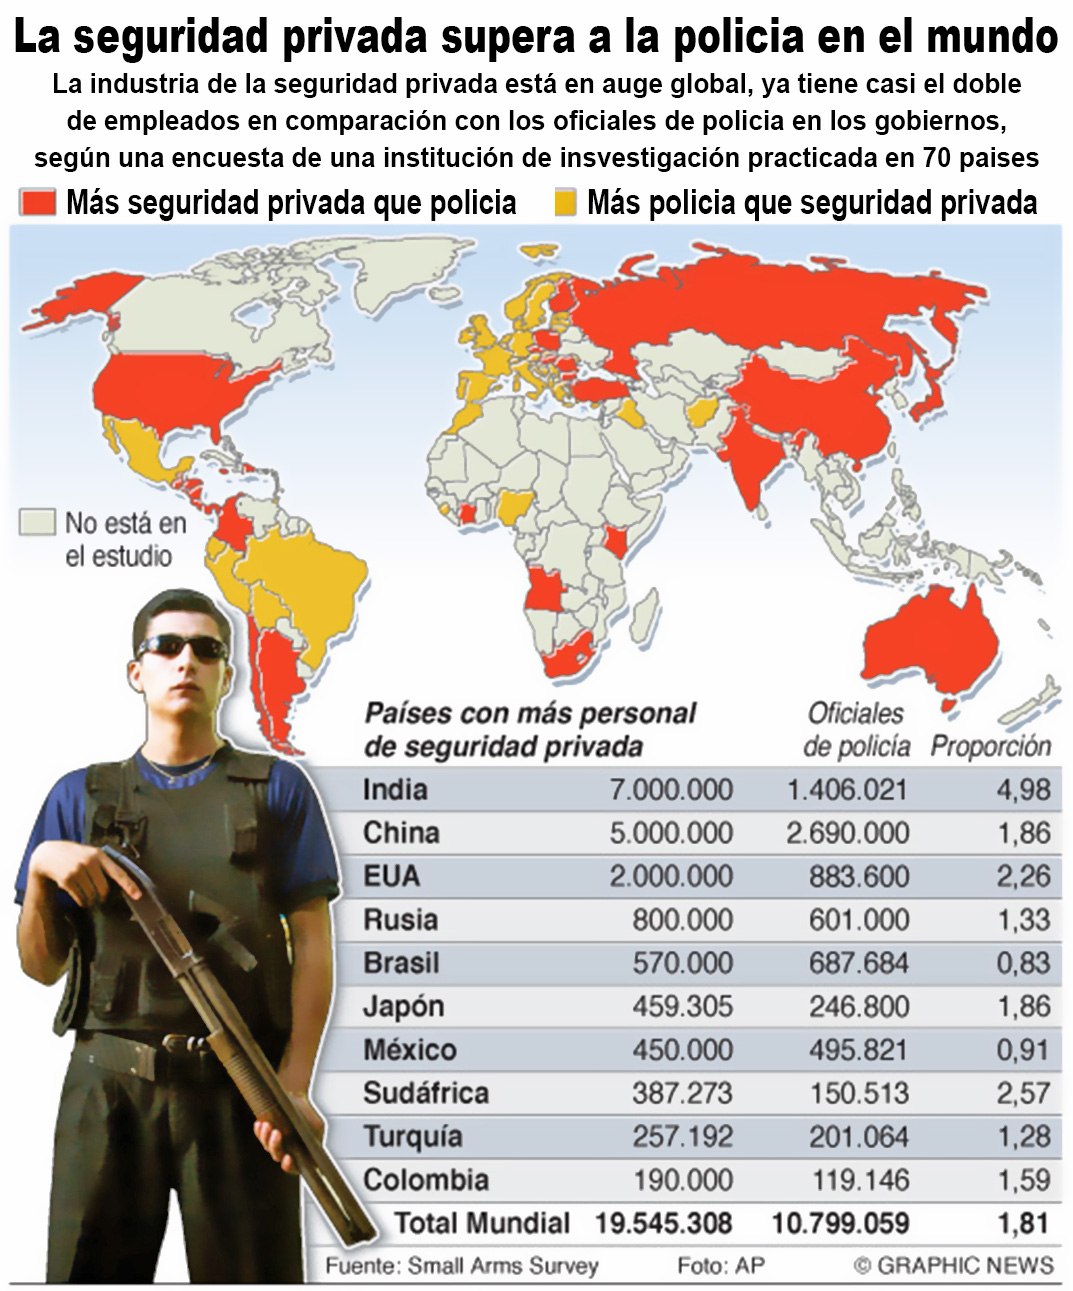 July 7, 2011--The private security industry is enjoying a global boom, employing almost twice as many people as governments have police officers, according to a research institution survey of 70 countries. Graphic shows countries with most private security personnel.